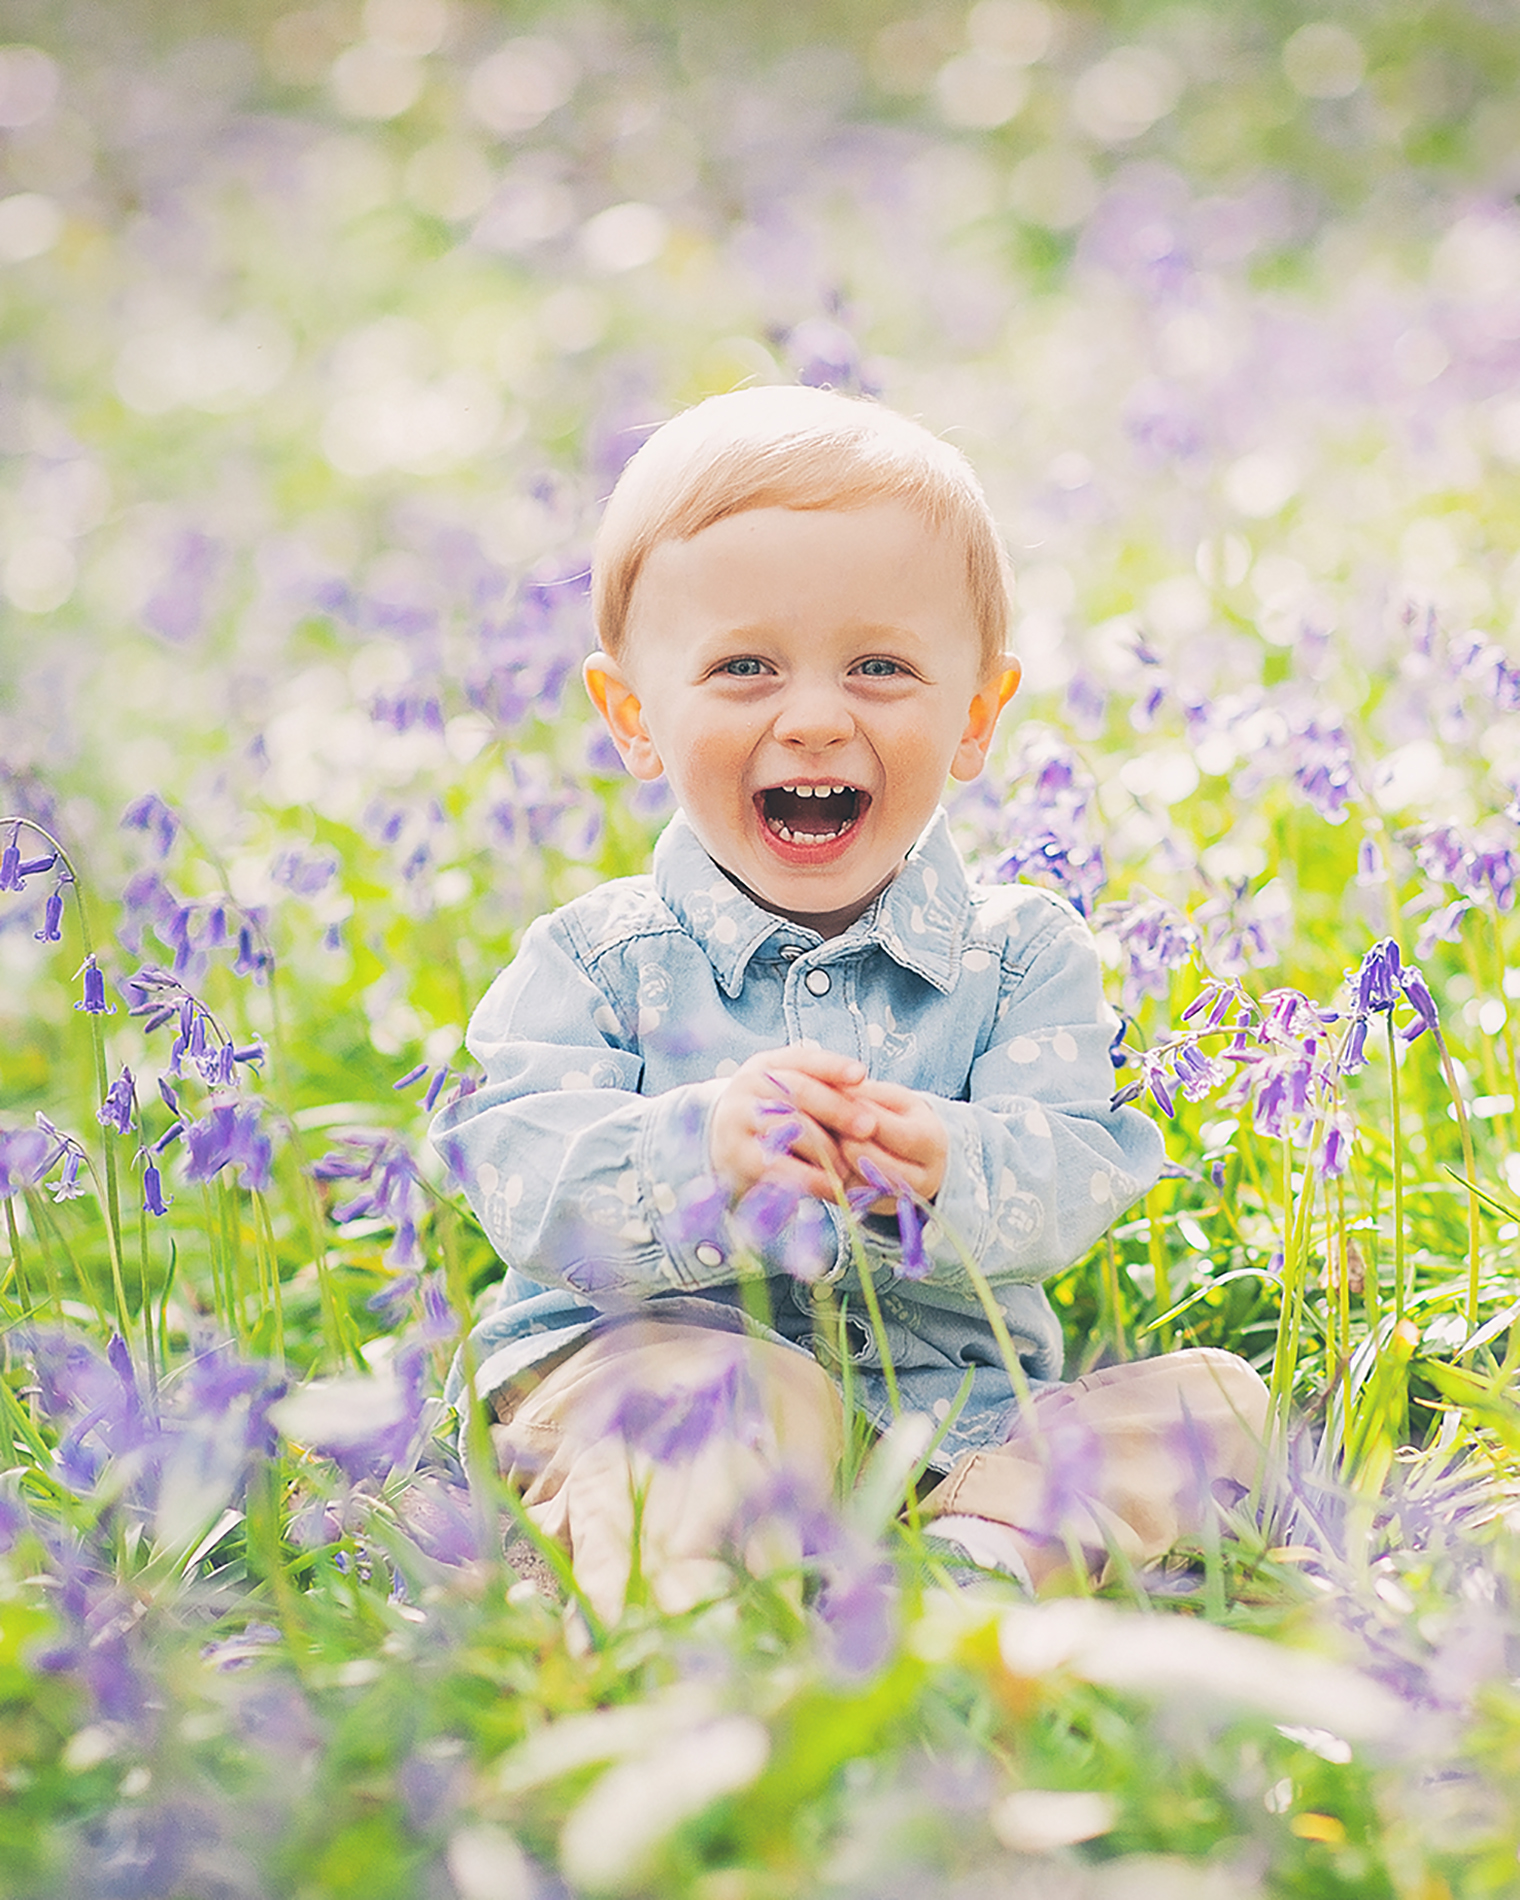 Little Toad Photography child portrait - child sitting in bluebell field for natural light photo shoot outdoors